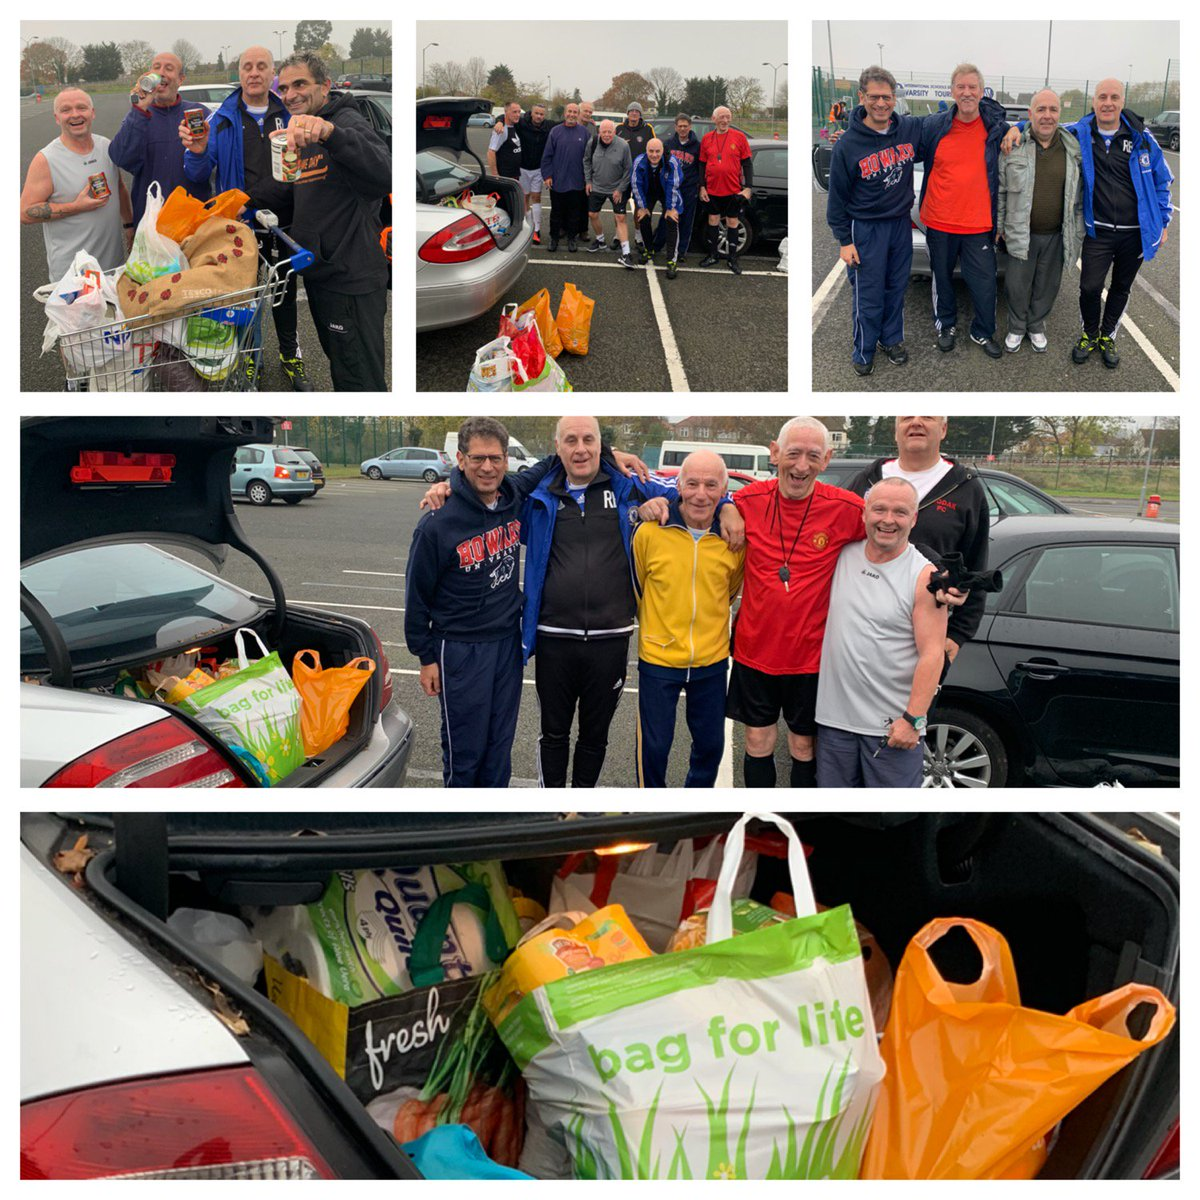 FOOD BANK COLLECTION SESSIONS by @BarnetWft at @TheHiveLondon home of @BarnetFC An amazing response by our @WalkingFootball team in aid of The @MuswellFoo muswell Hill Food Bank  @middxfa @radioharrow @Muswellife<br>http://pic.twitter.com/6Sn9NQszlq